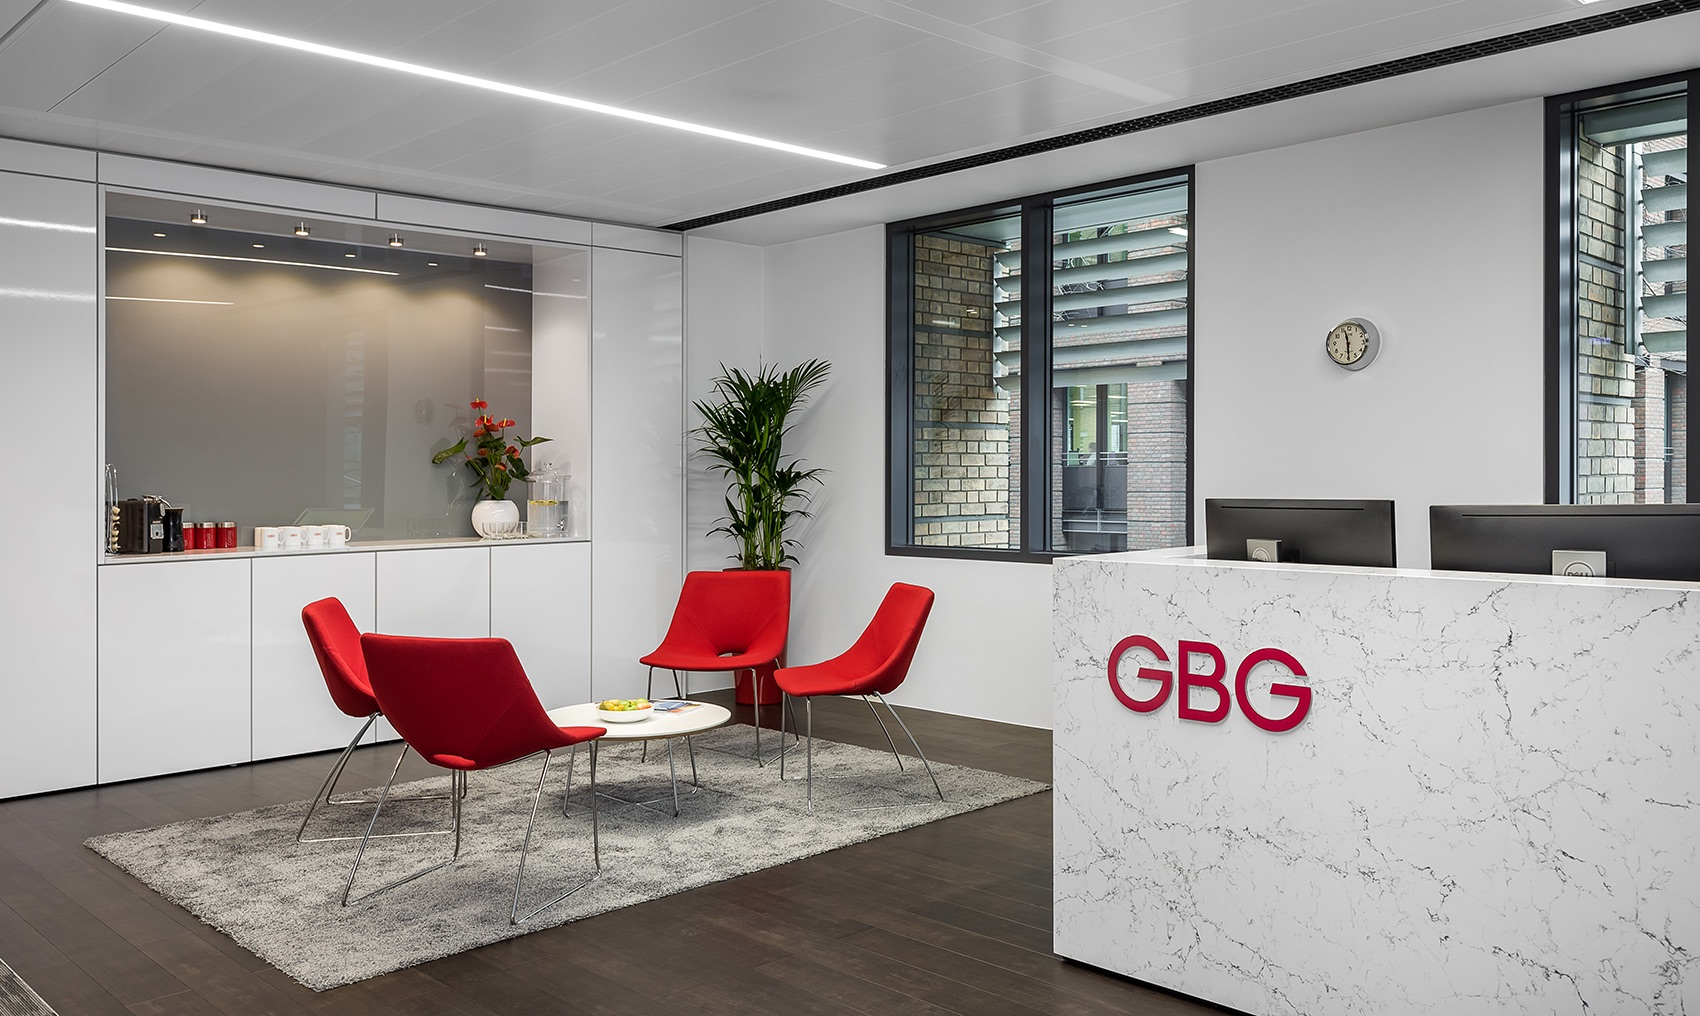 gbgroup-london-office-2